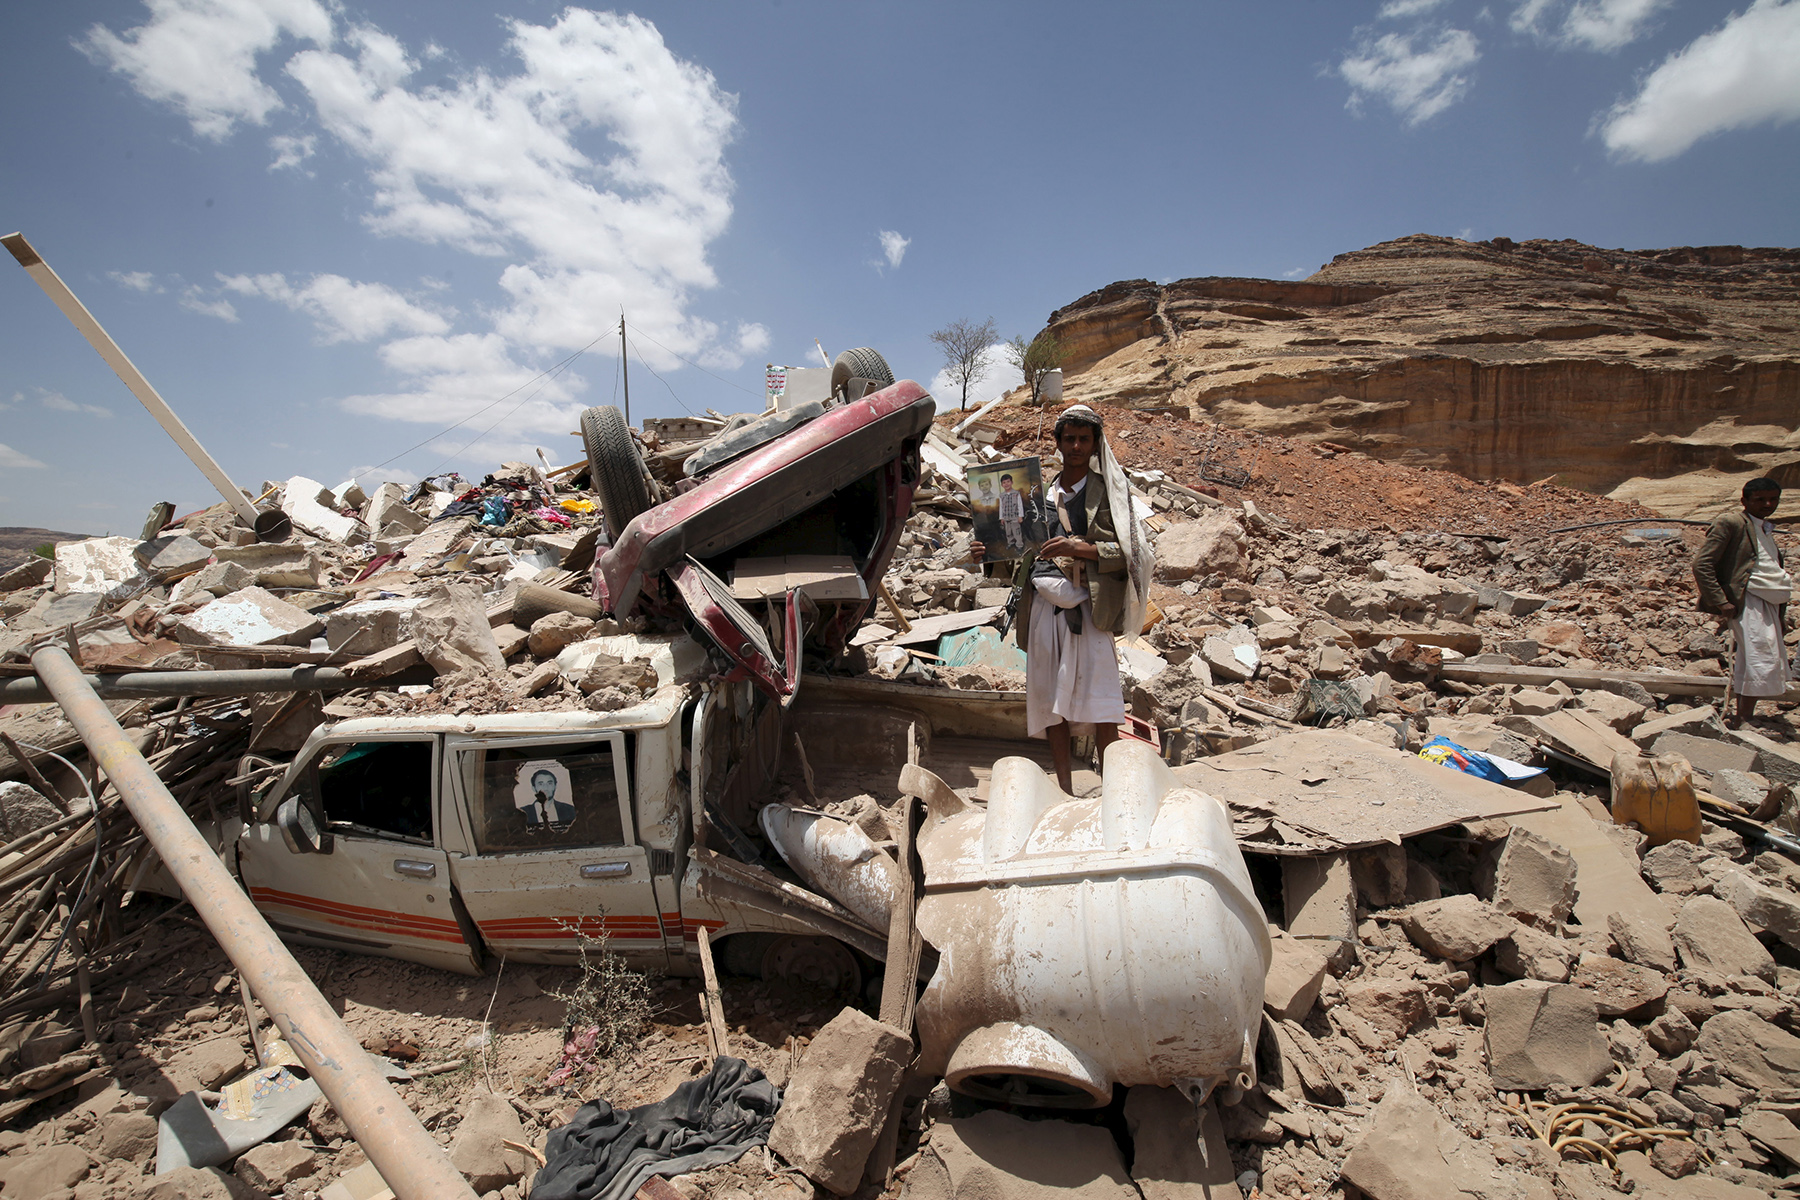 A Houthi militant stands amidst debris from a house of a Houthi leader which was destroyed by a Saudi-led air strike, near Sanaa